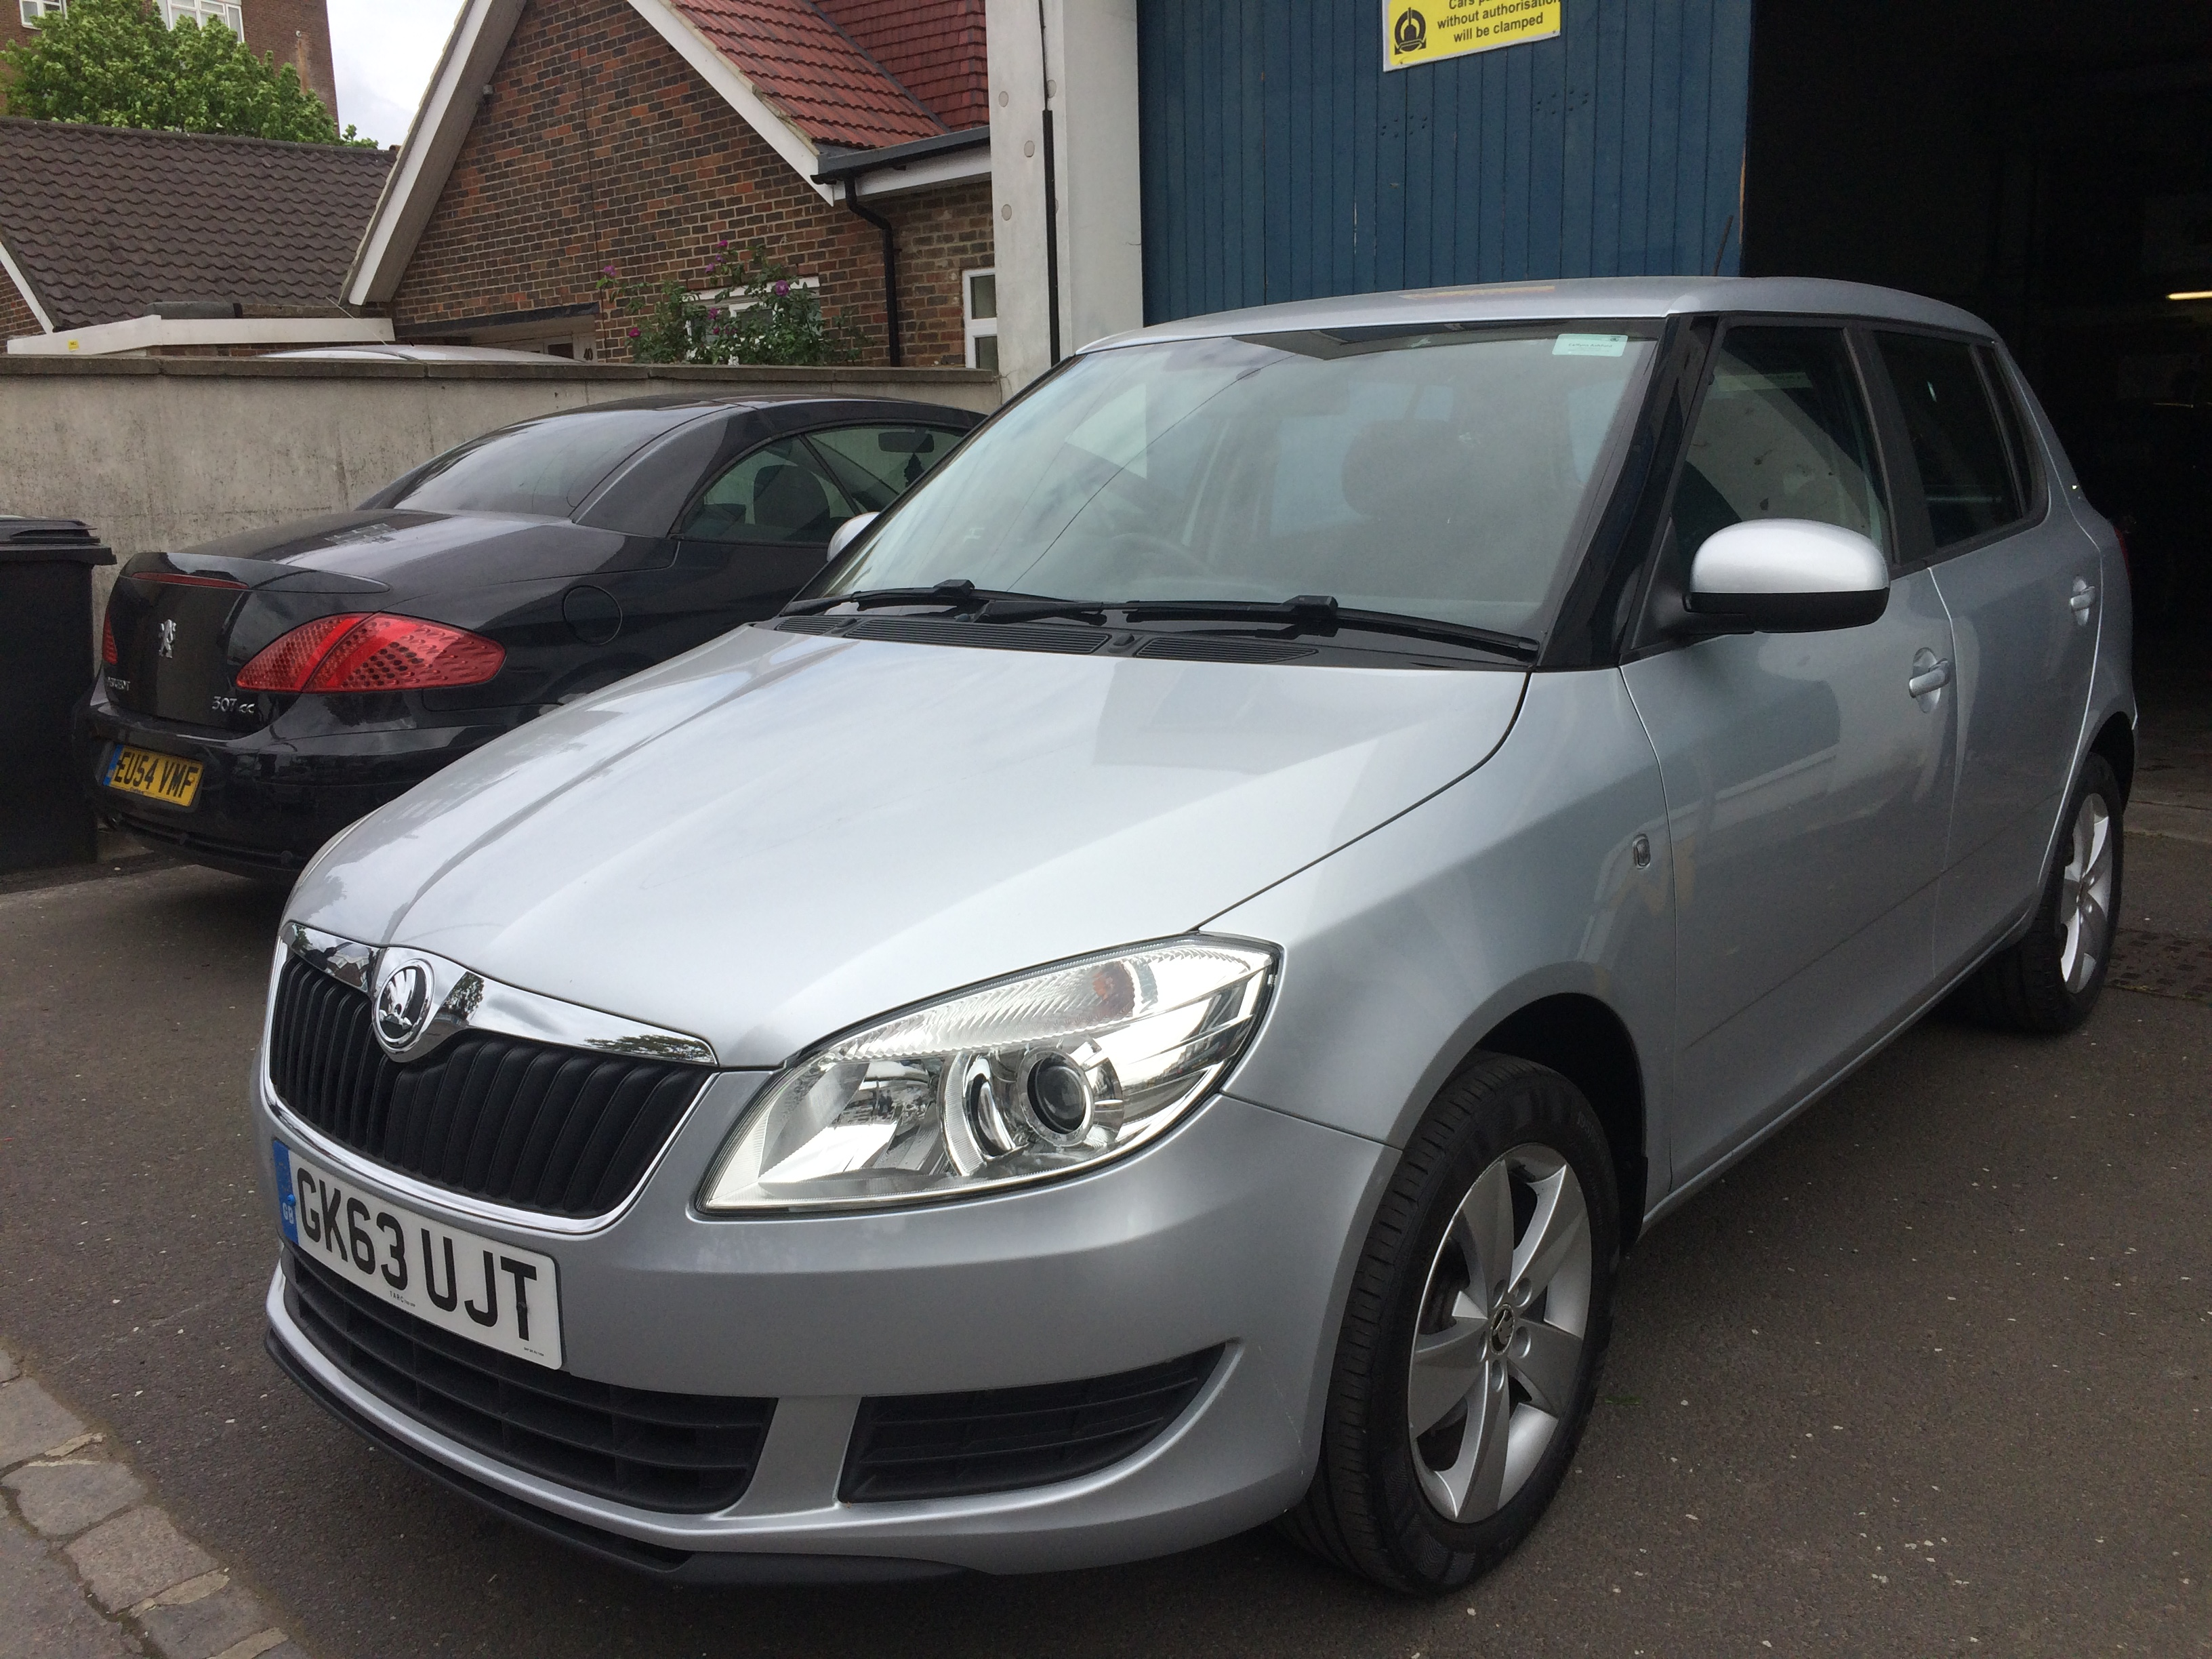 Skoda Fabia 1.2 SE 5dr 1 OWNER FROM NEW,1 YEAR MOT,£4990